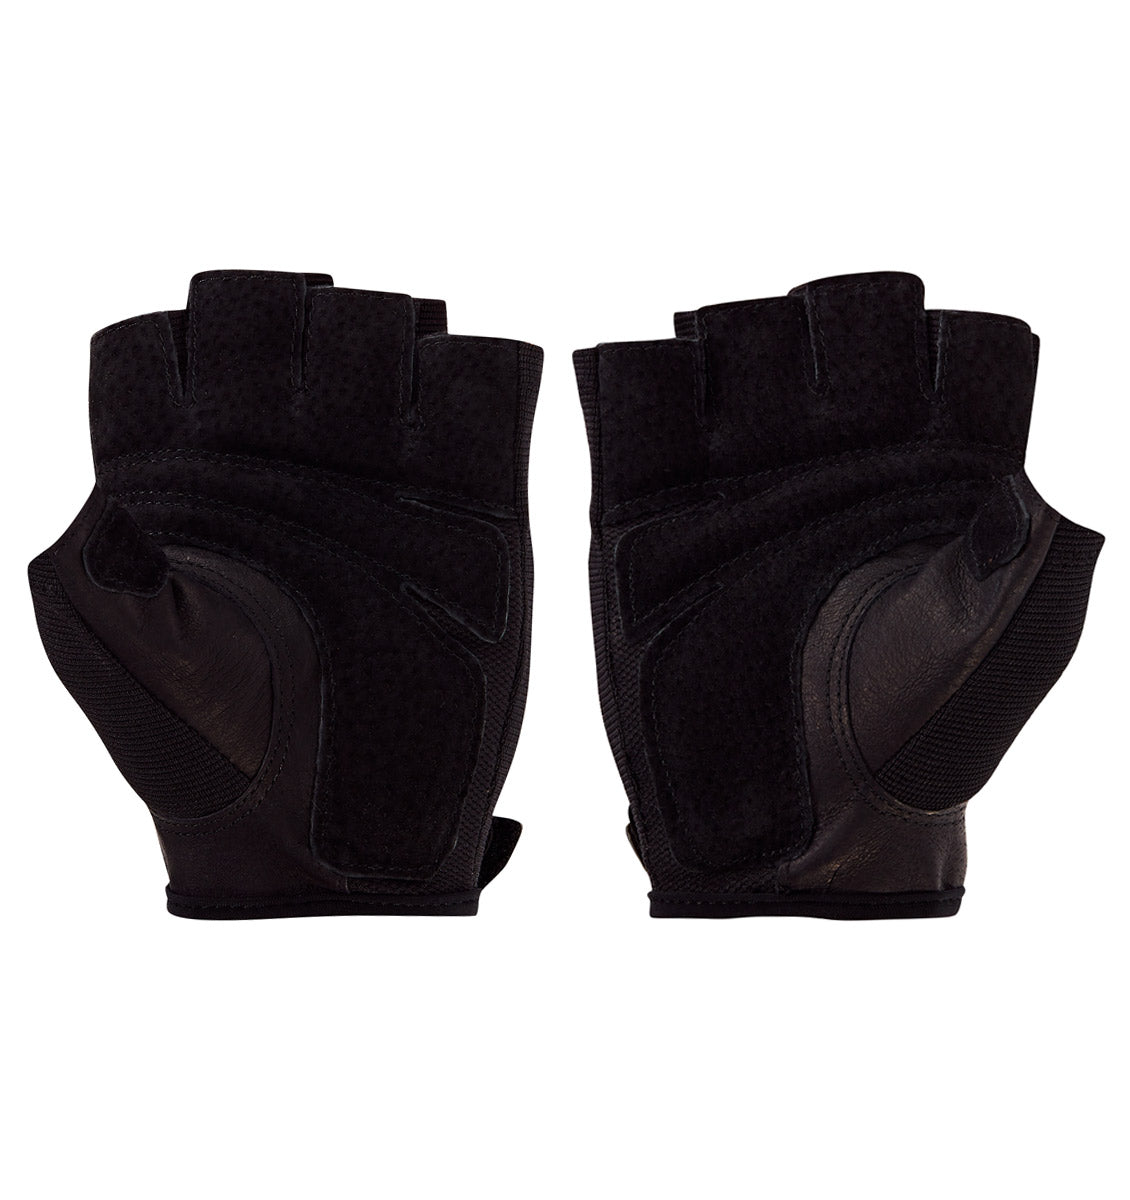 0155 Harbinger Power Series Mens Gym Gloves Pair Palm